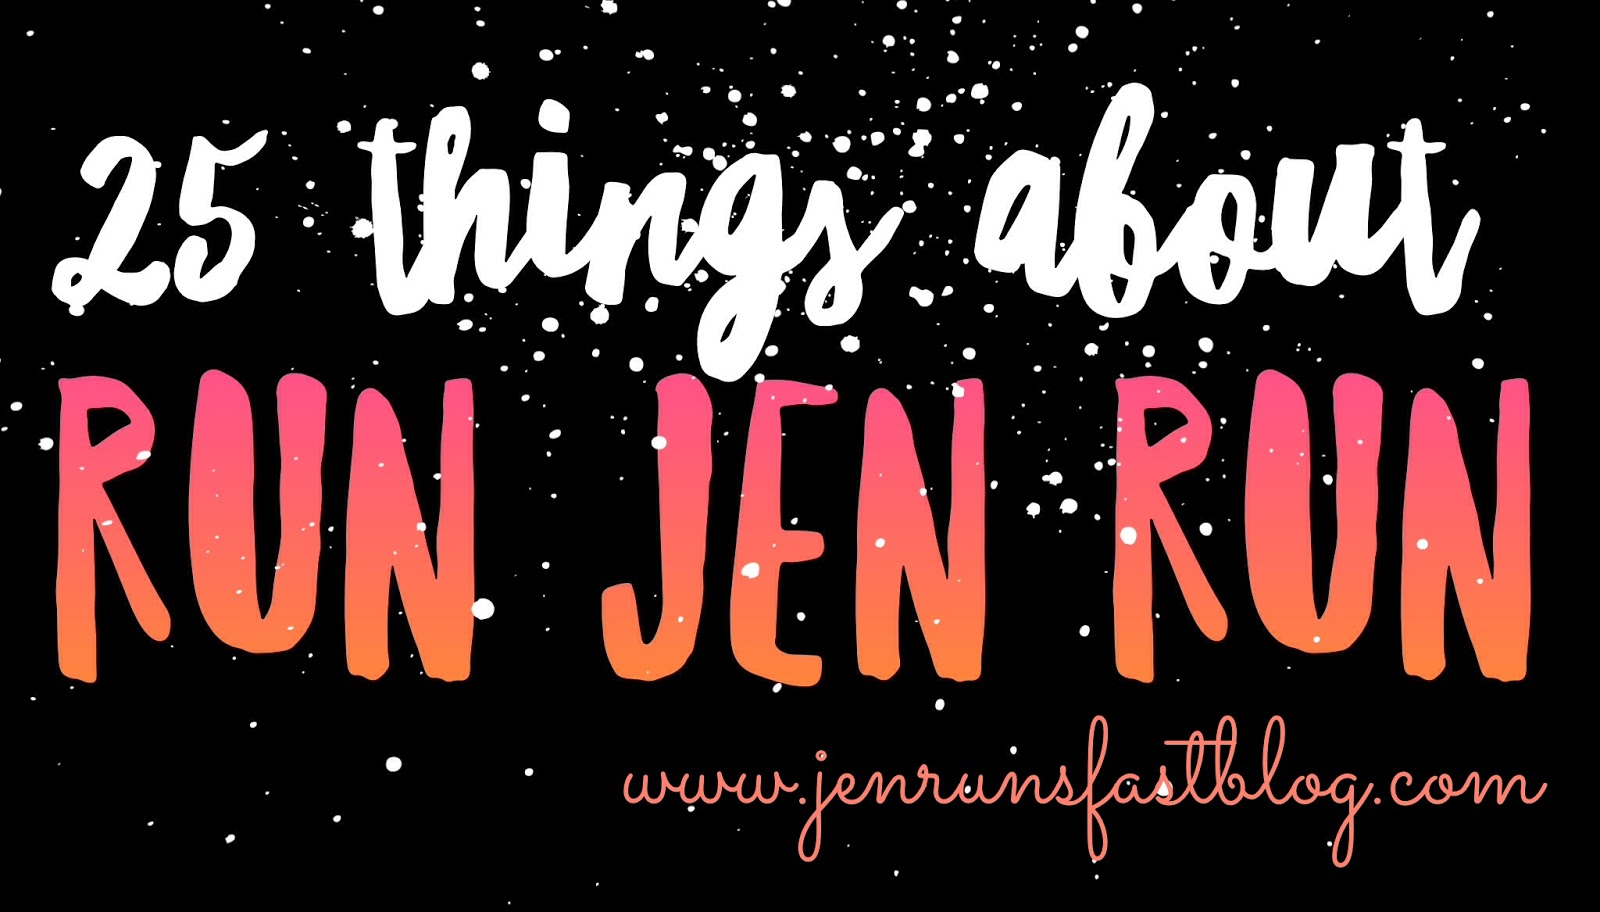 Run Jen Run: 25 Things About Me